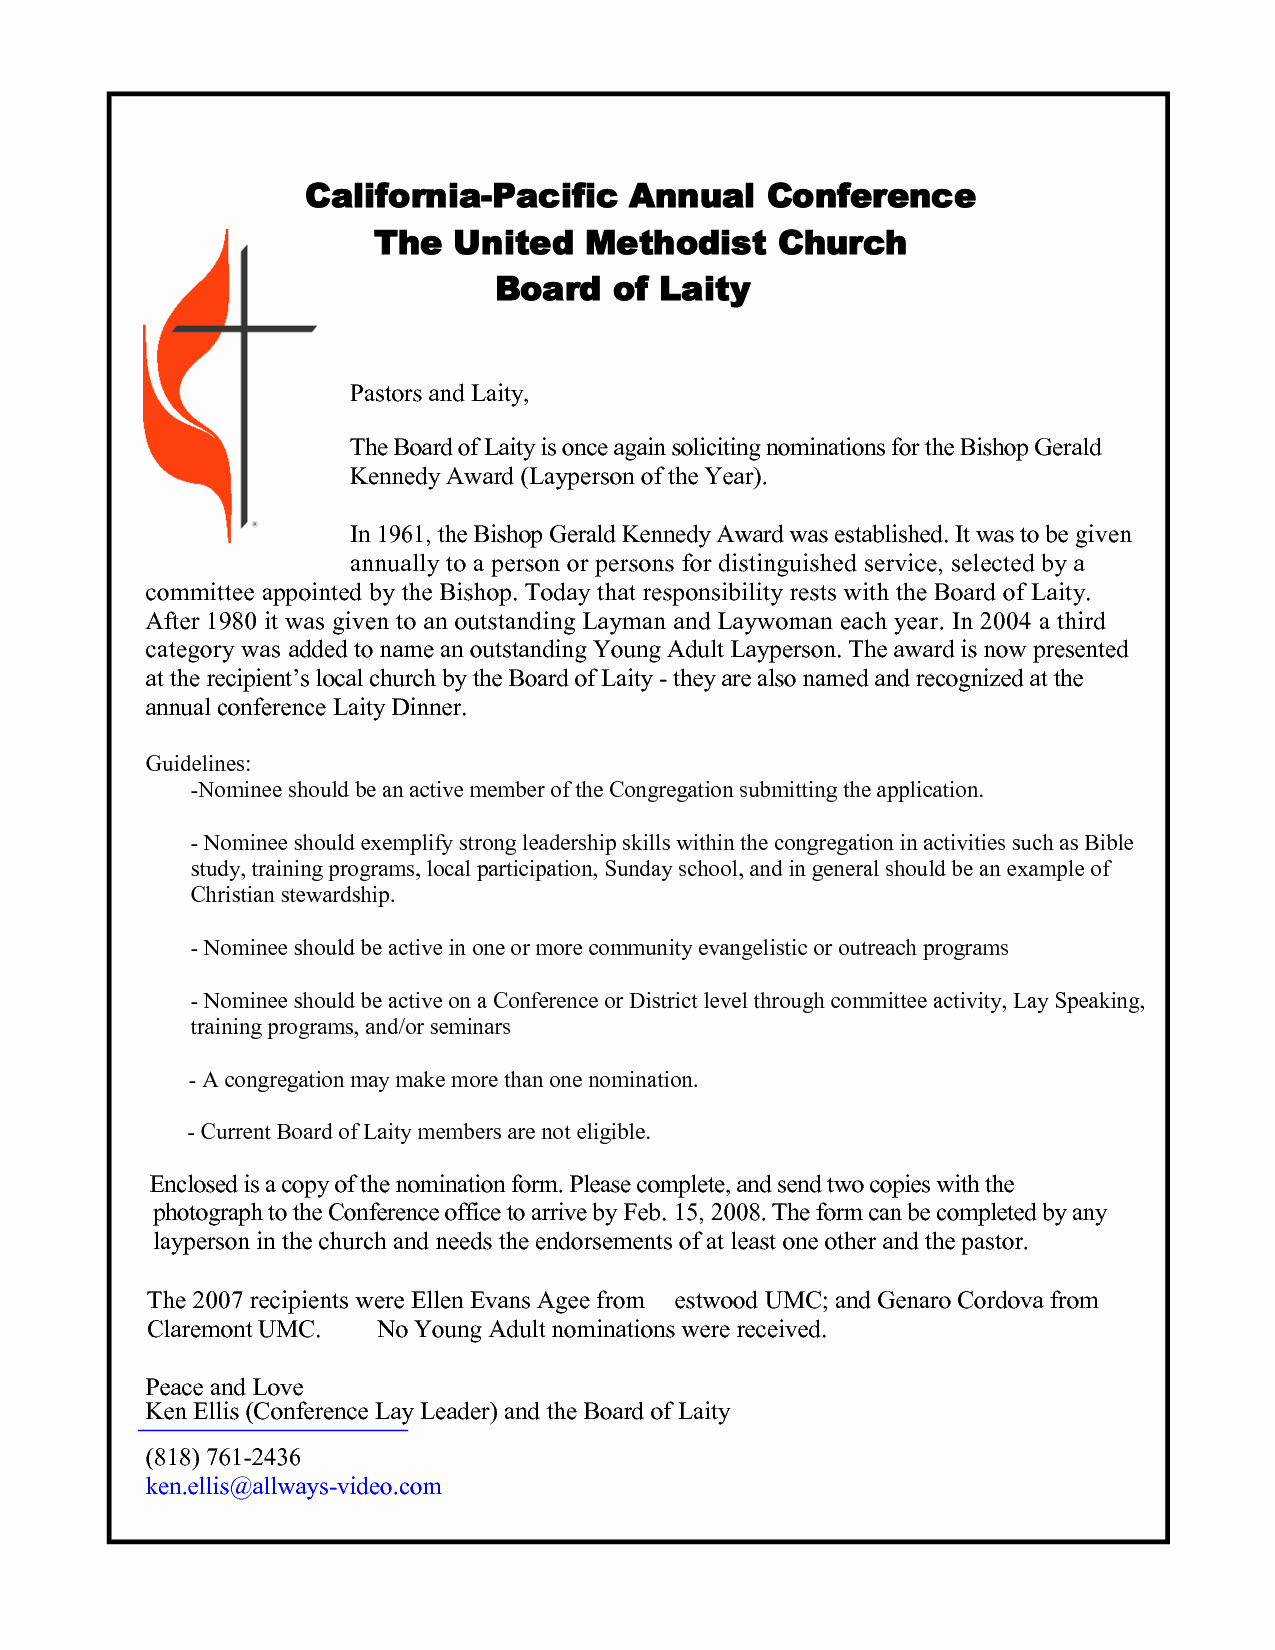 Pastor Anniversary Invitation Letter Awesome Sample Church Invitation Letter Sample Invitation Letters